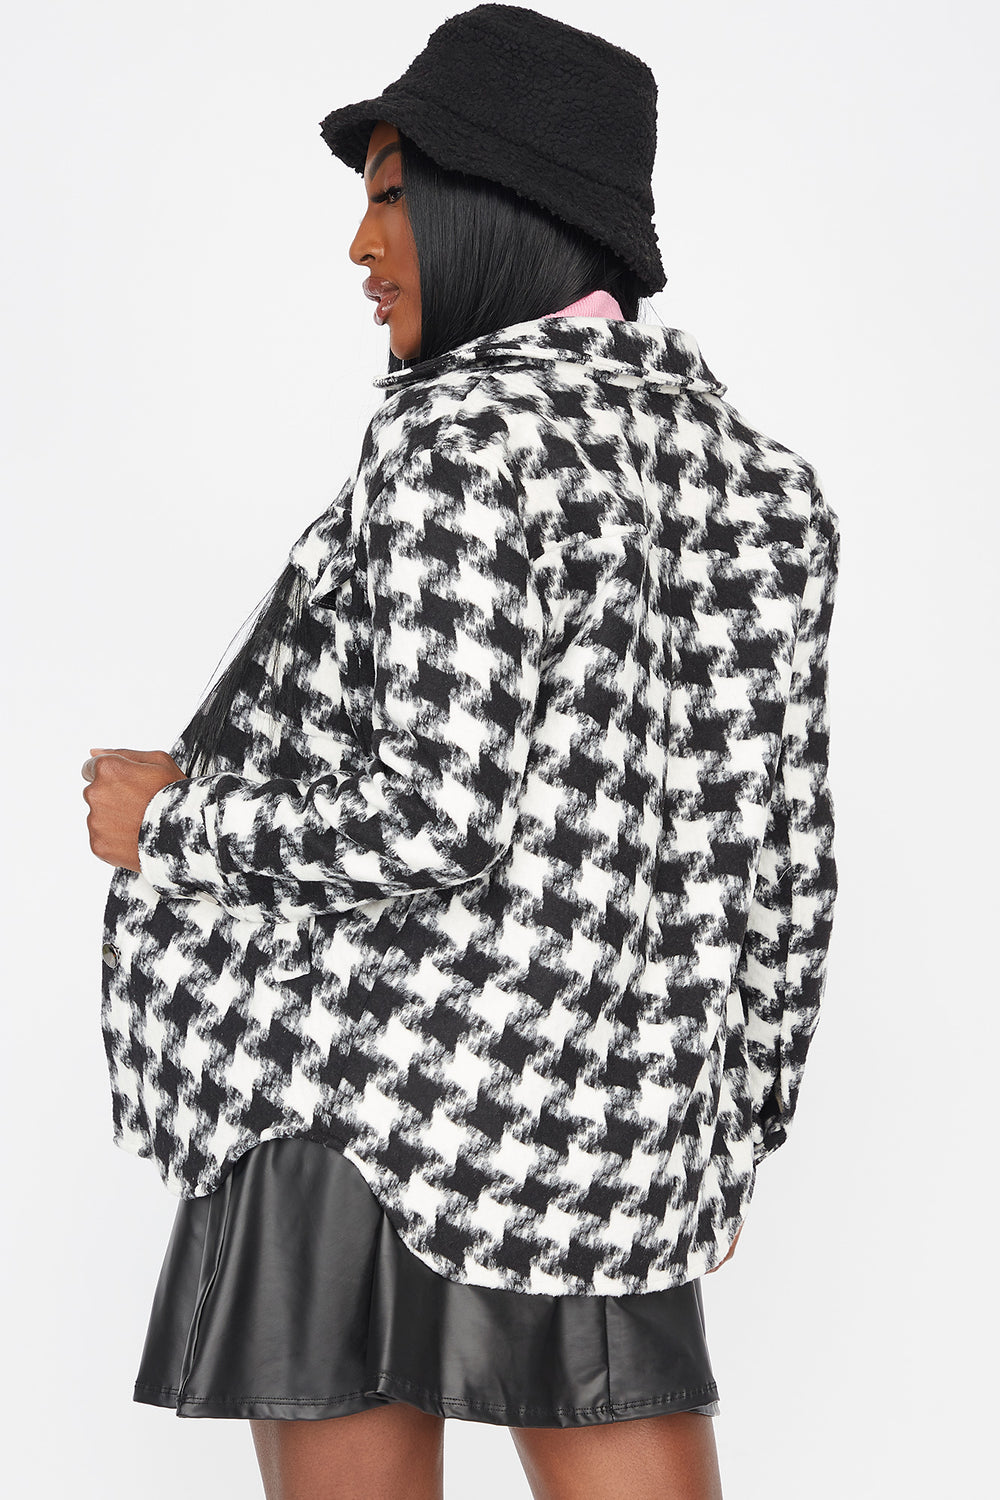 Houndstooth Button-Up Jacket Black with White